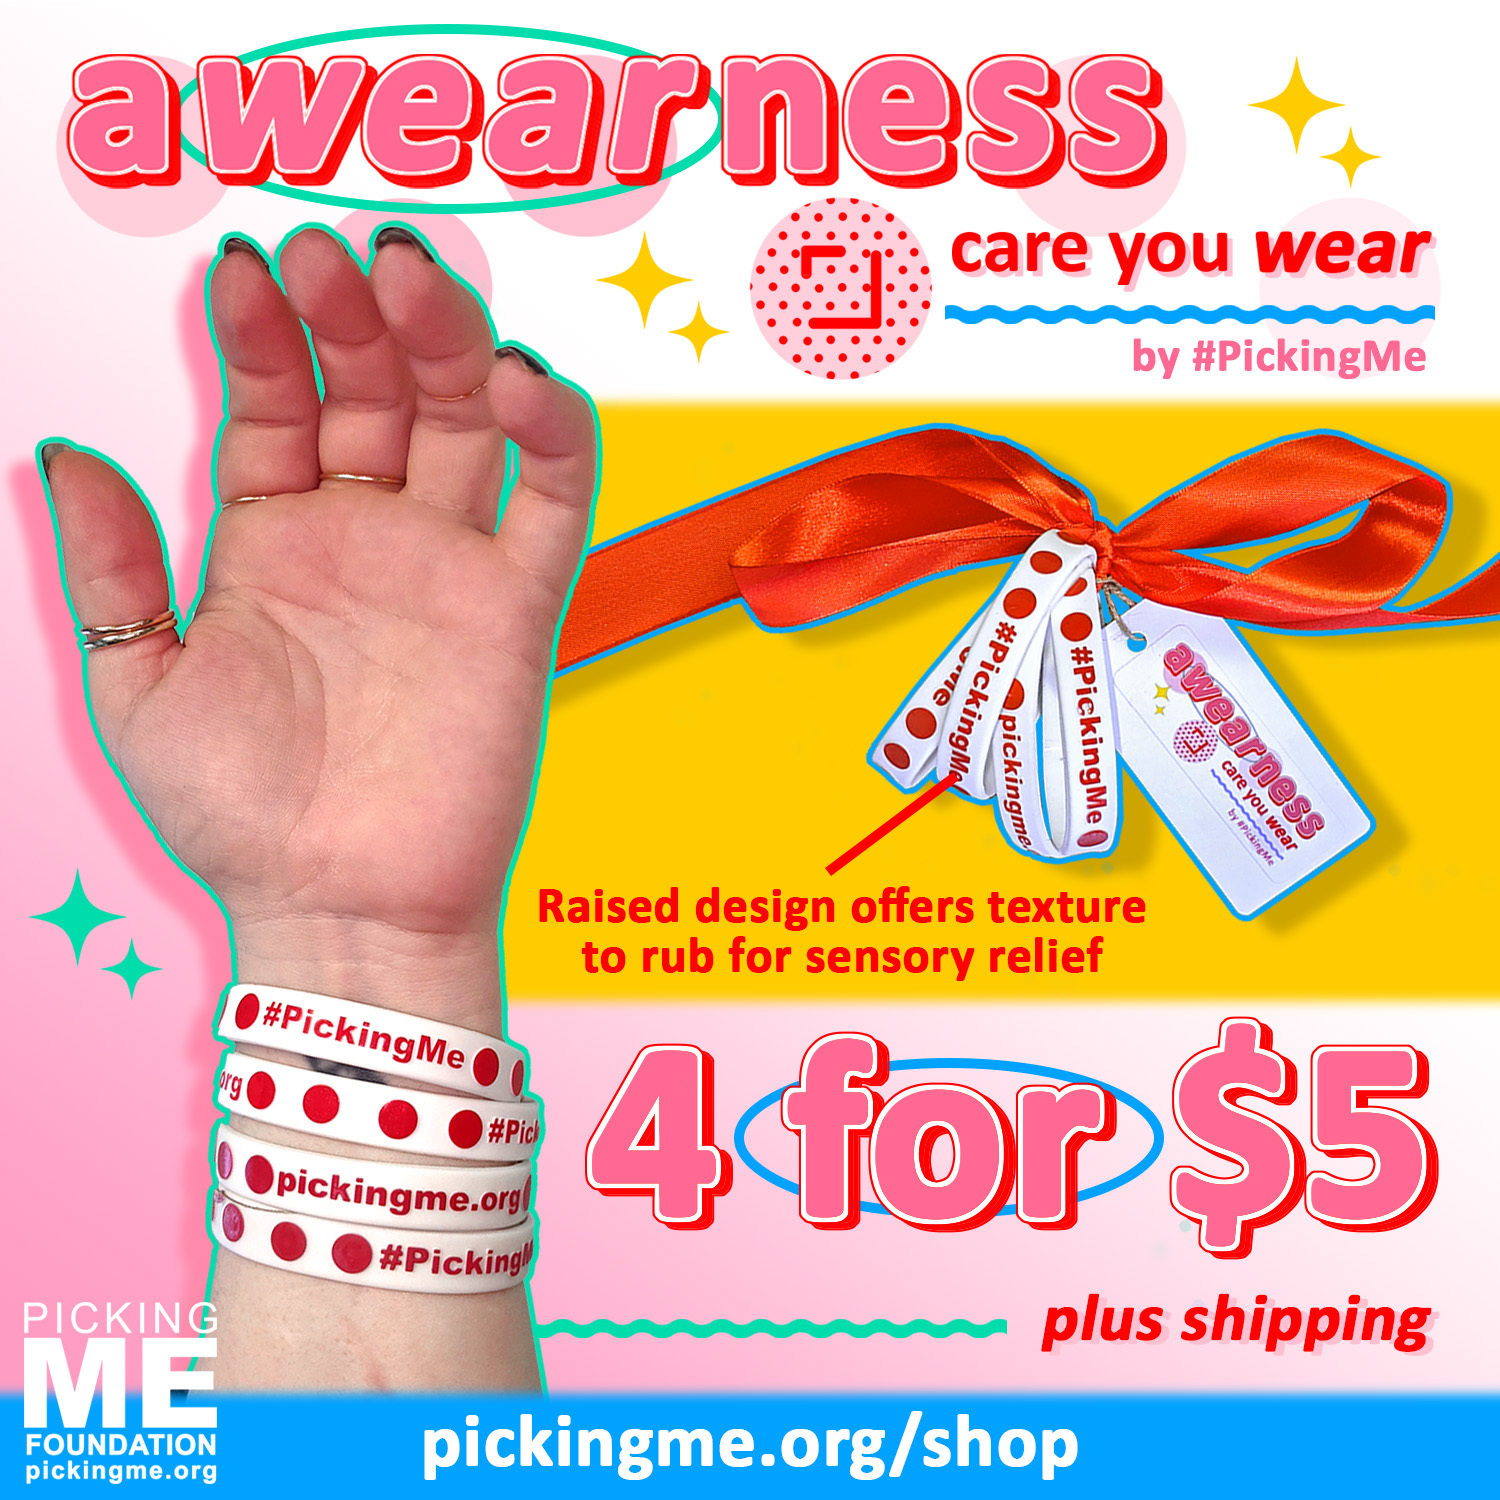 #PickingMe Awearness Bracelets